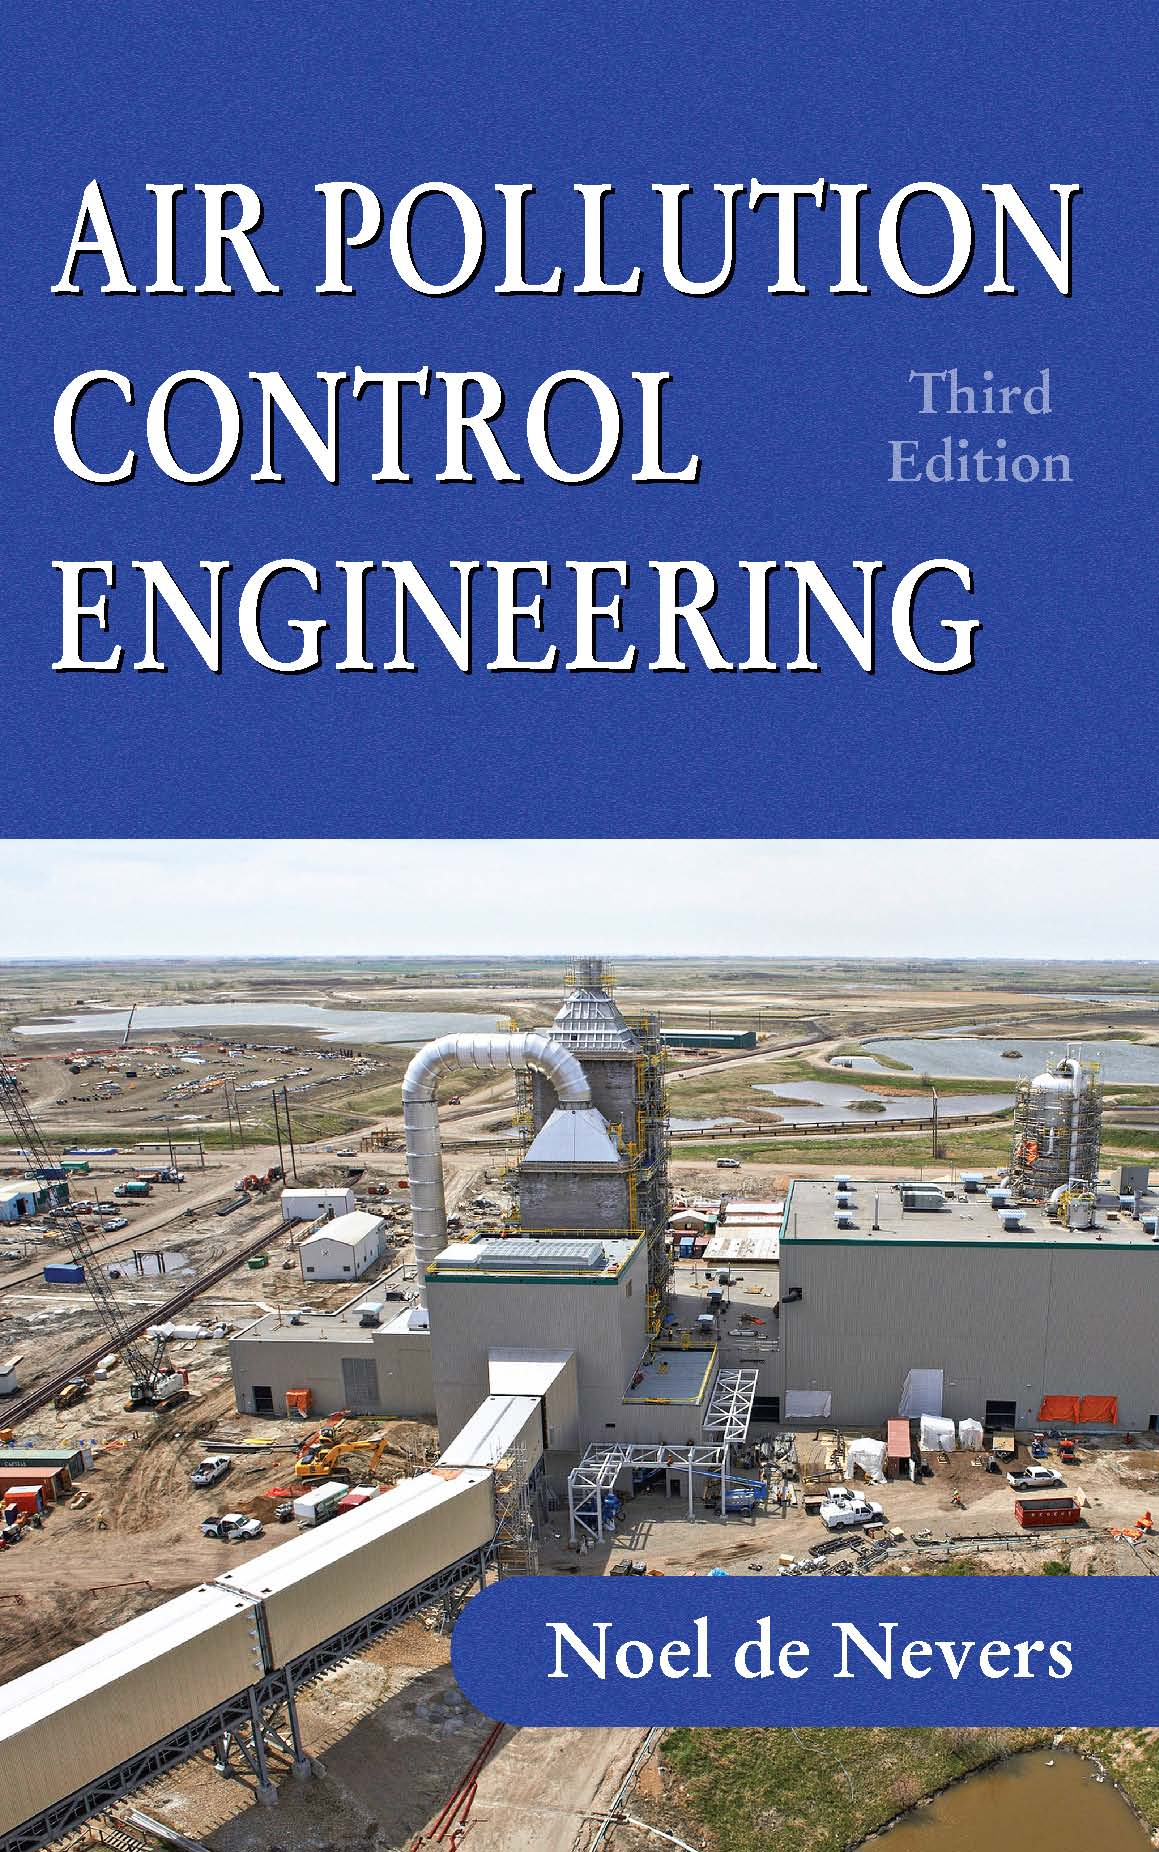 Air Pollution Control Engineering: Third Edition by Noel  de Nevers